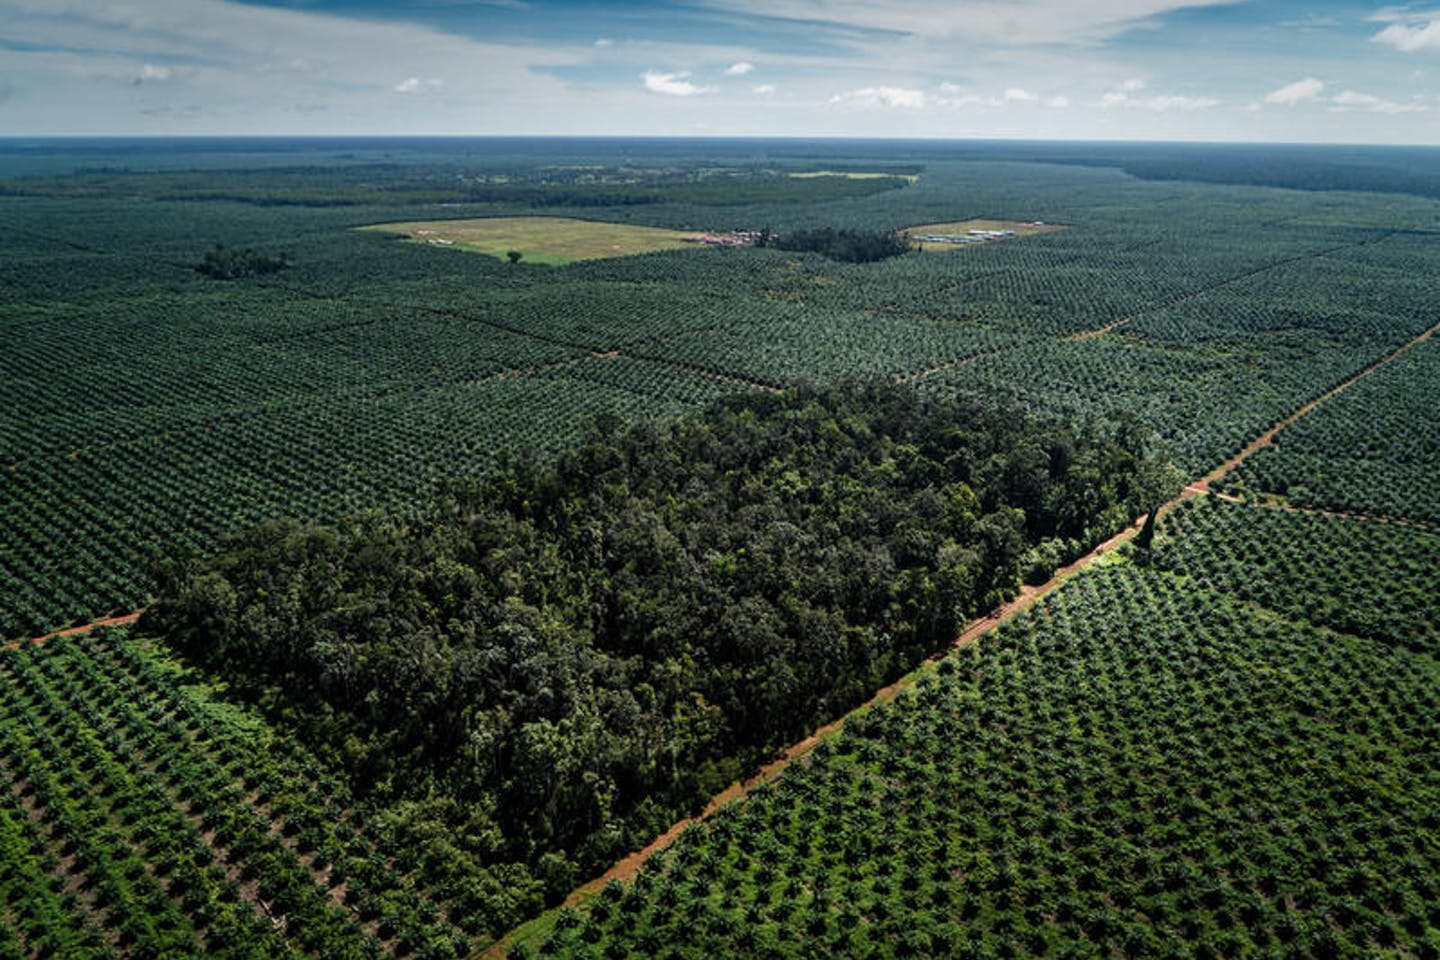 A new Greenpeace International investigation has revealed that Wilmar International, the world's largest palm oil trader, is still linked to forest destruction for palm oil almost five years after committing to end deforestation.[1]